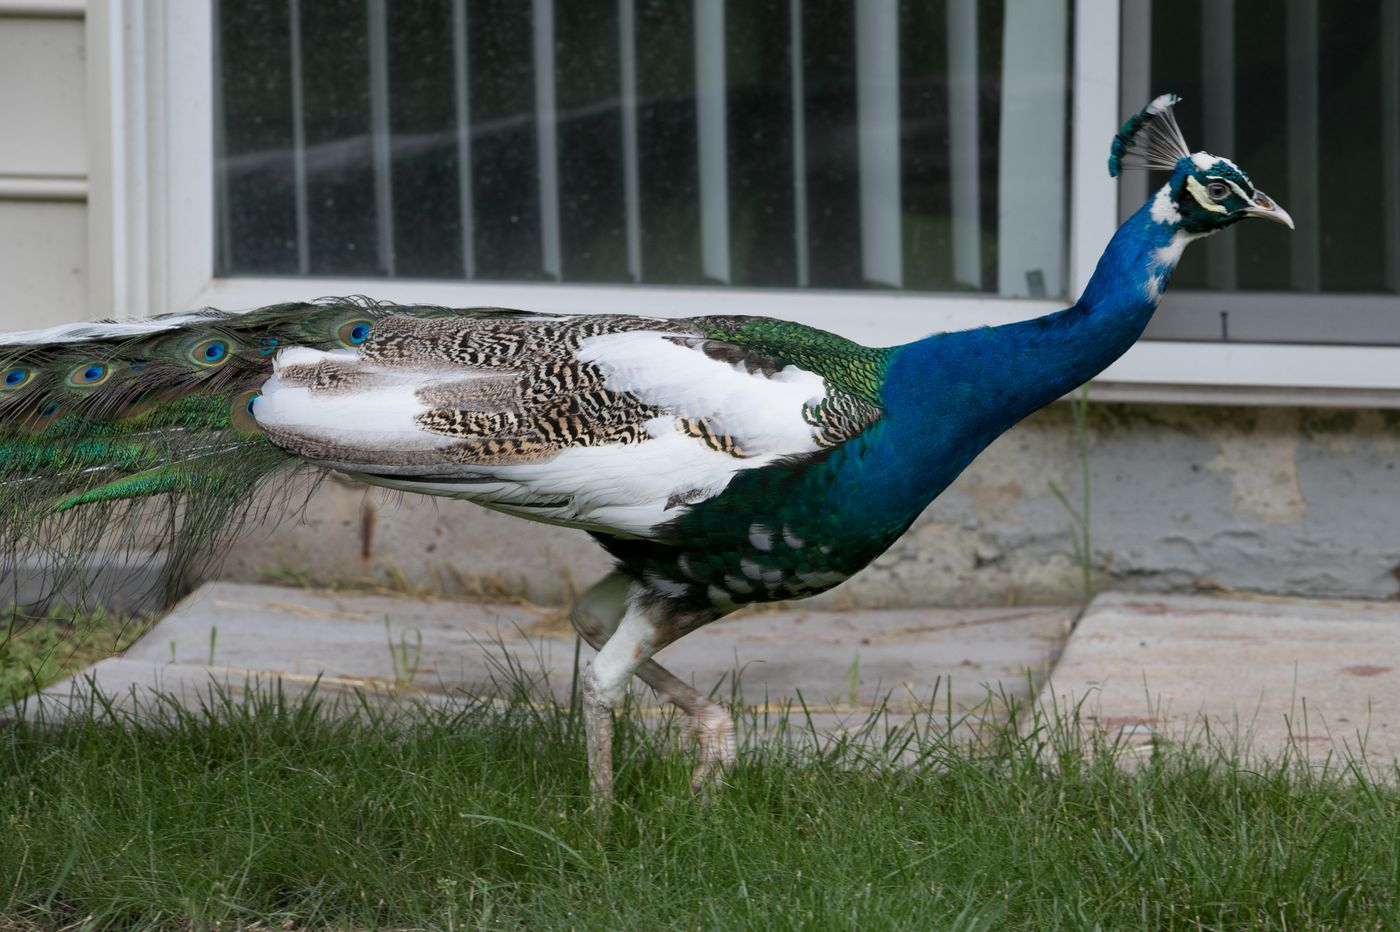 In Malvern, 'Harry the Peacock' has found a home